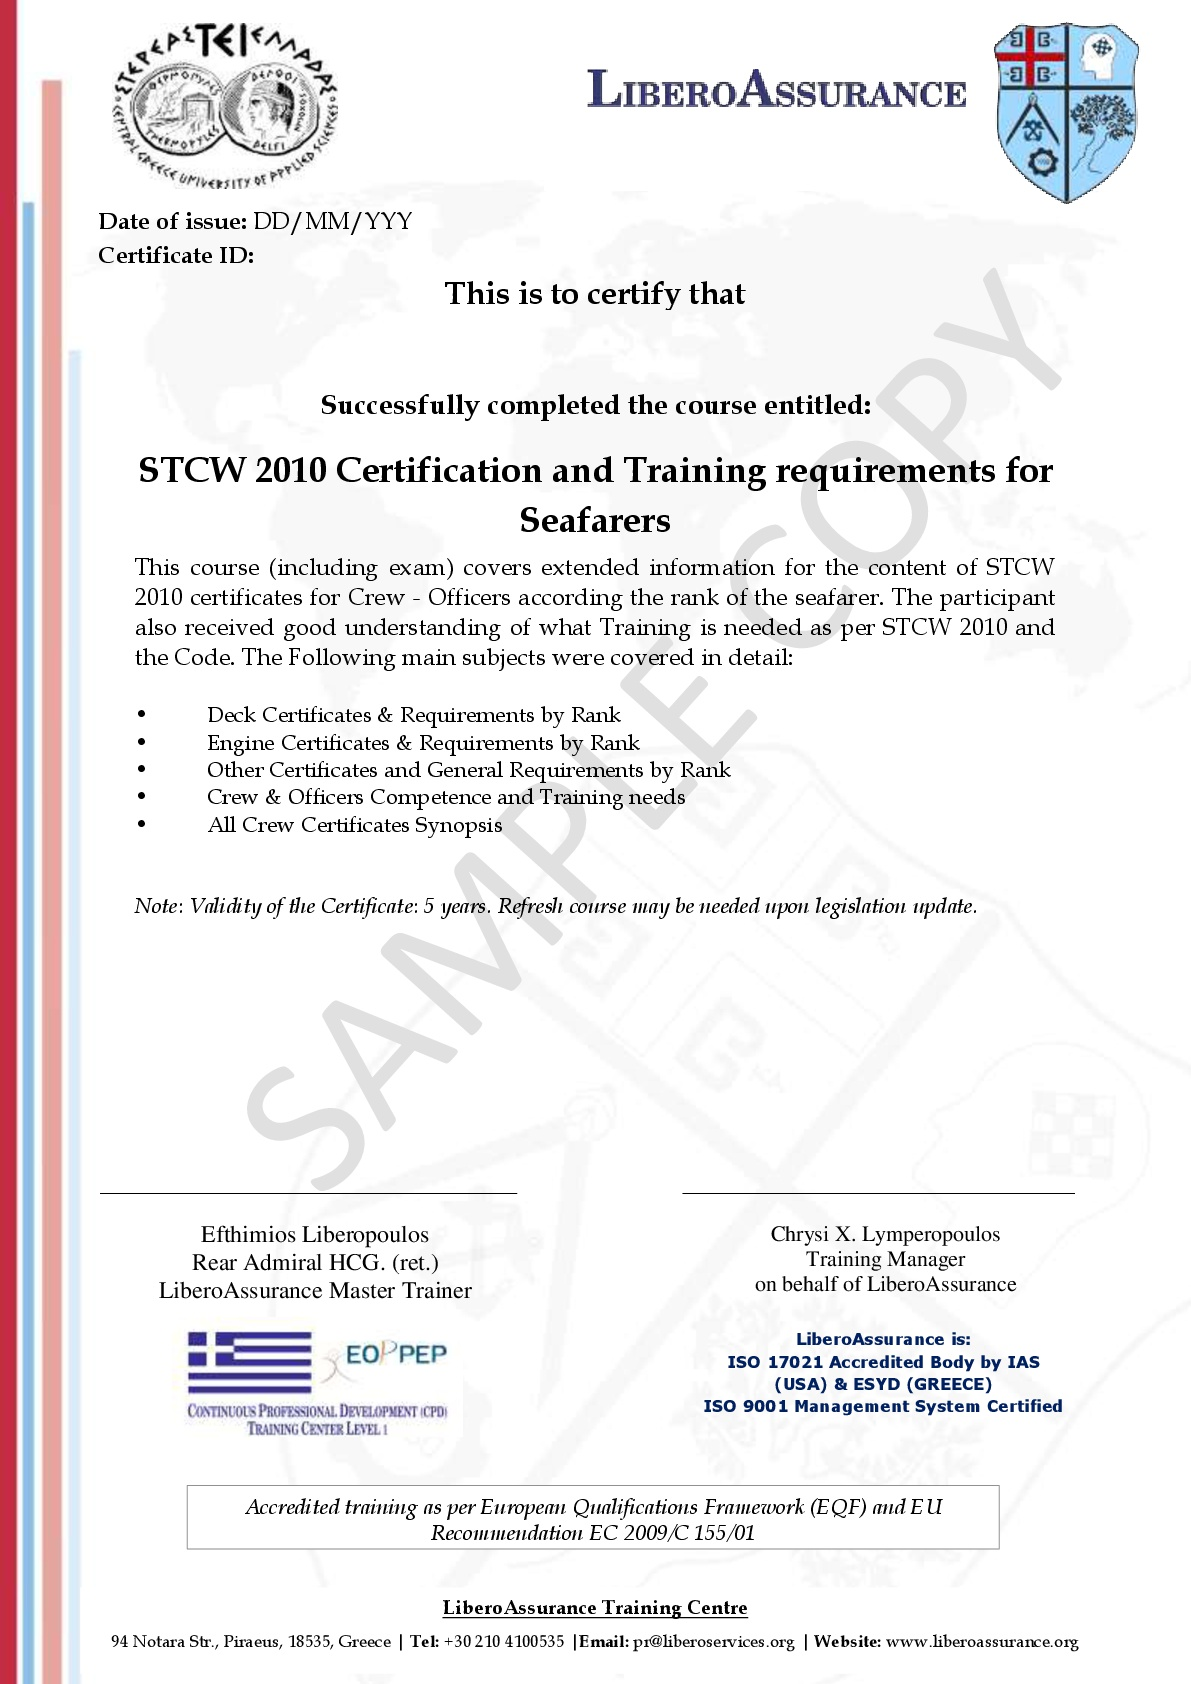 Stcw 2010 Certification Training Requirements For Seafarers